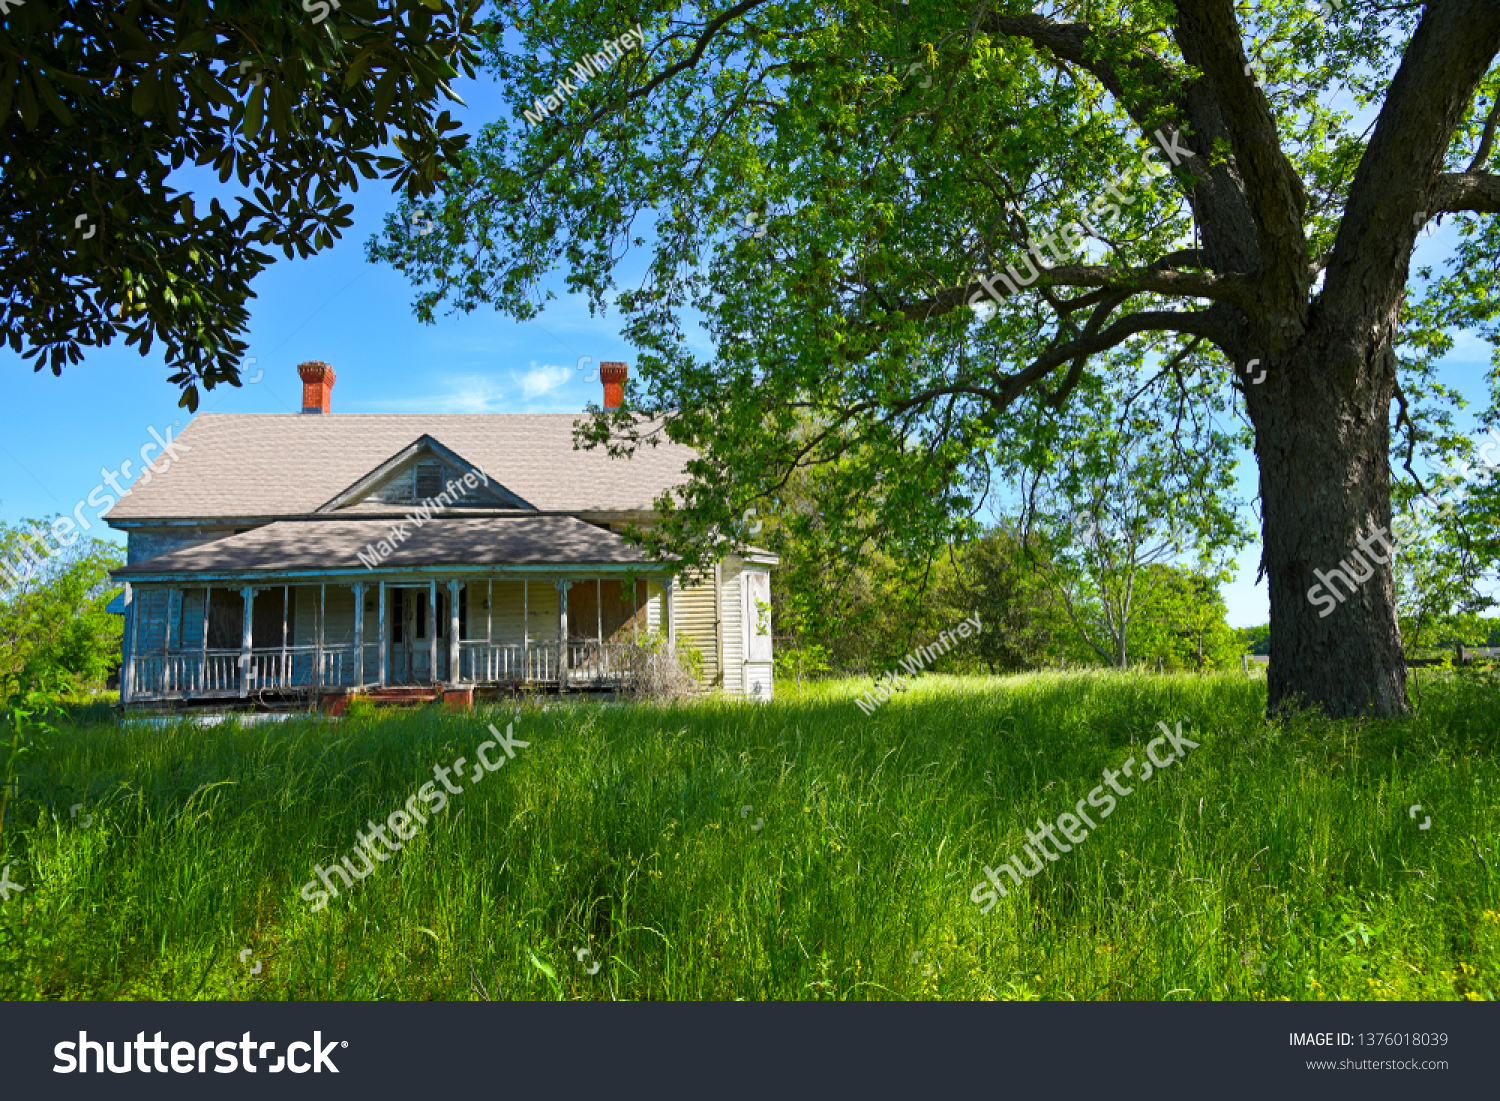 stock-photo-abandoned-farmhouse-in-rural